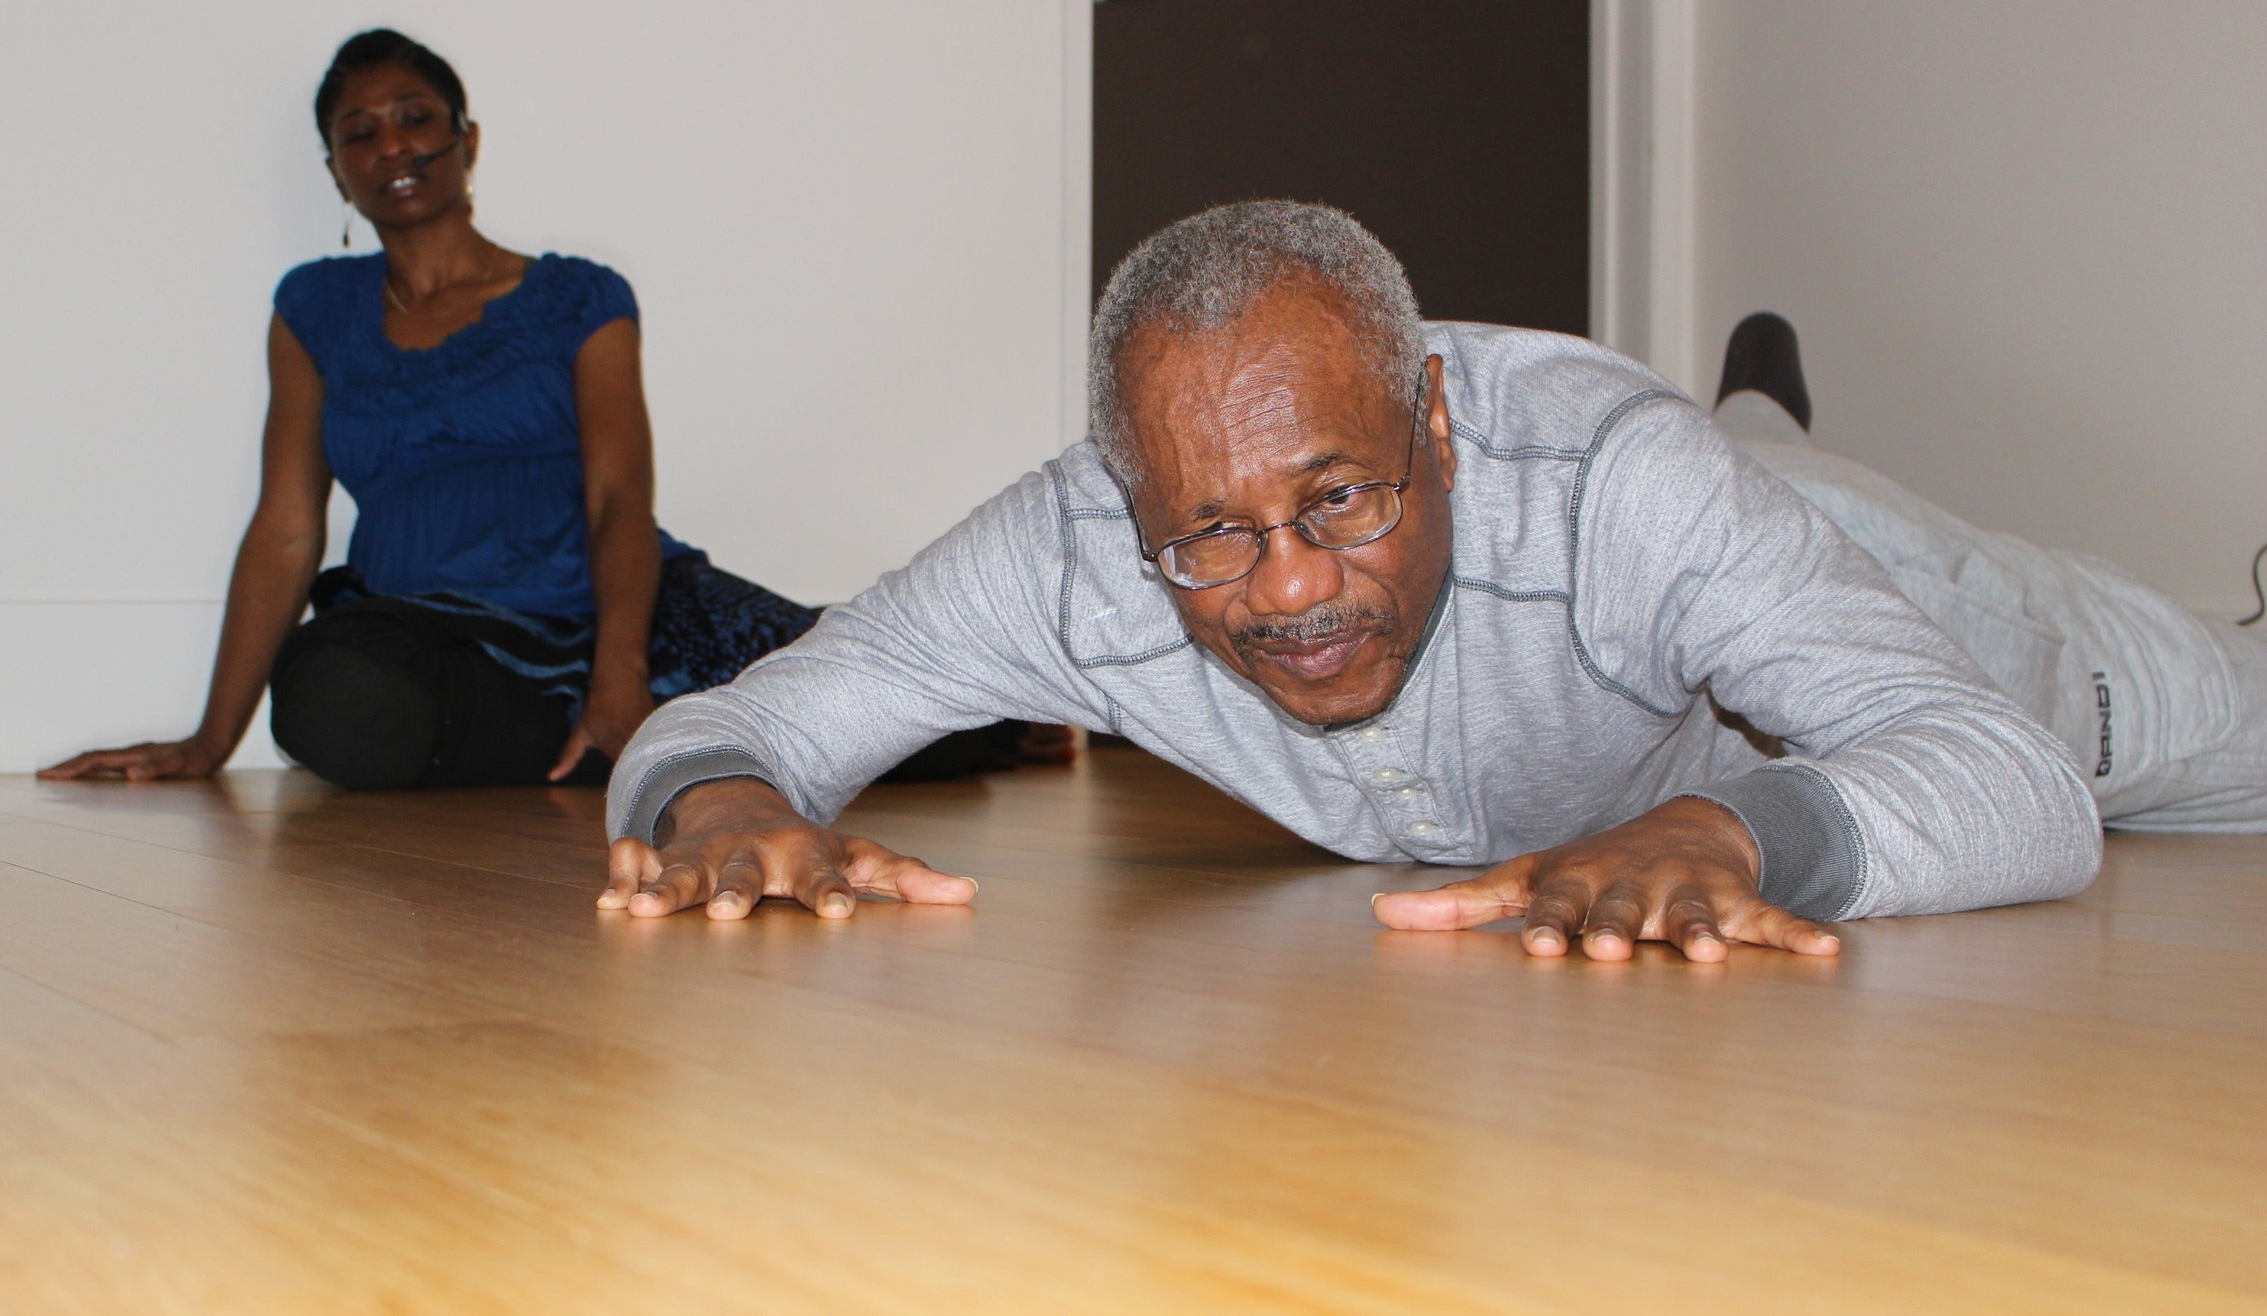 Mr. White doing Nia 5 Stages (Creeping) in his 1 on 1 session.